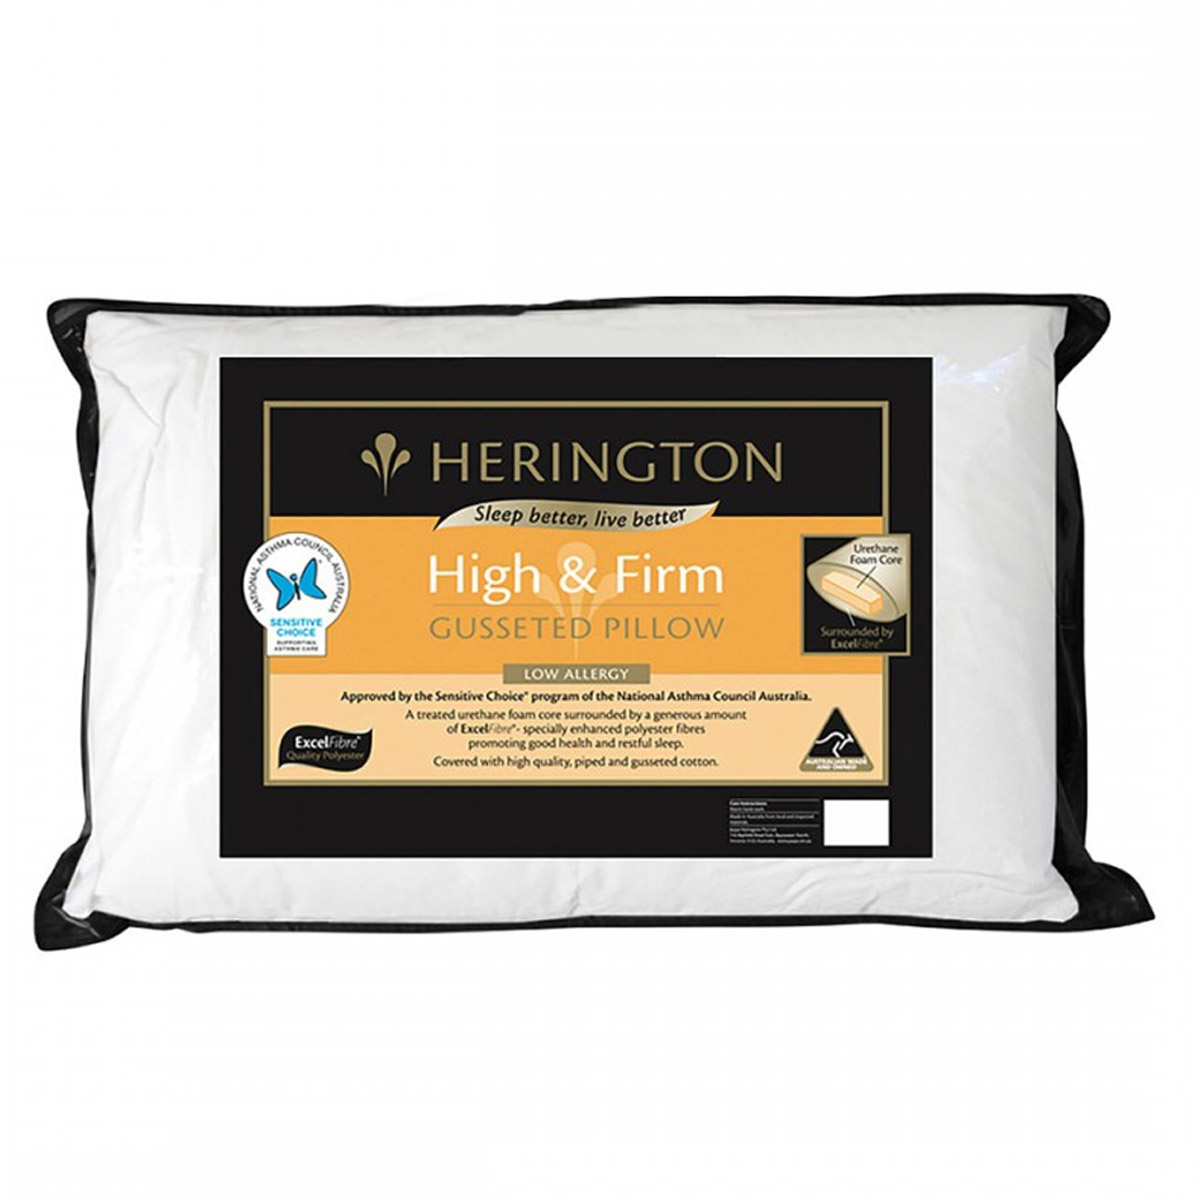 Herington ExcelFibre Gusseted Pillow - Profile and Firmness Options